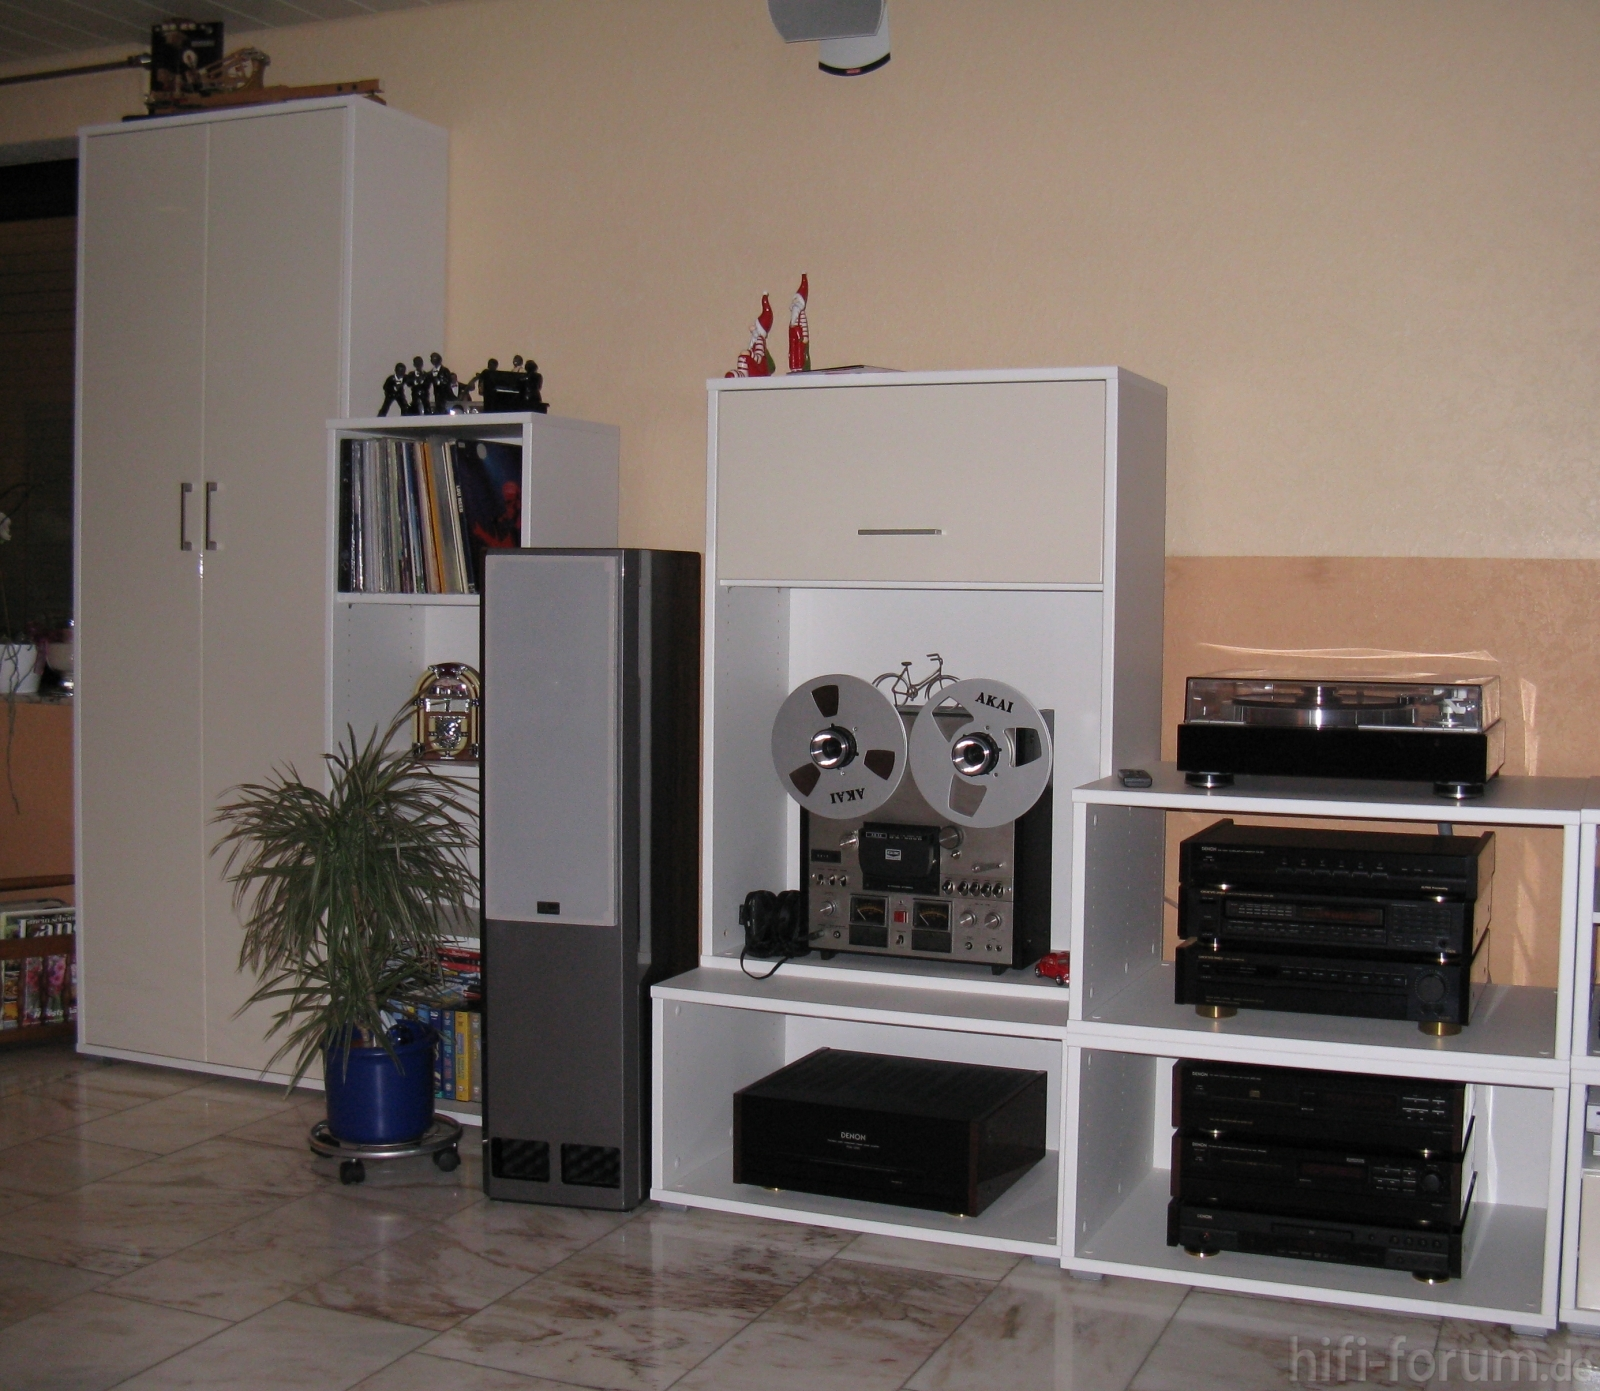 anlage wohnzimmer neu anlage hifiklassiker stereo. Black Bedroom Furniture Sets. Home Design Ideas